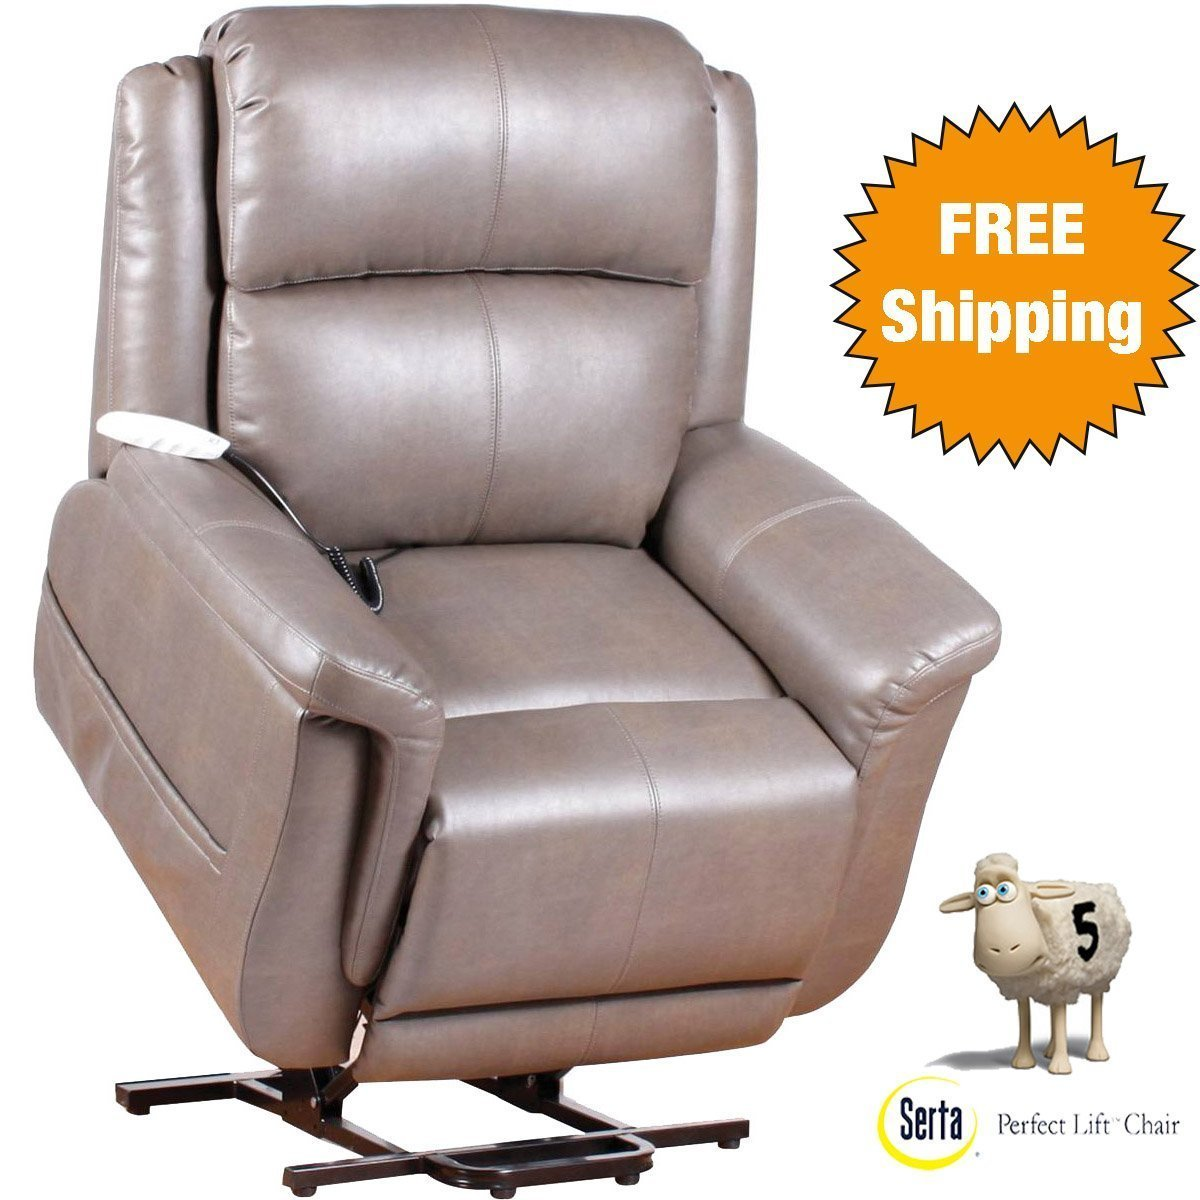 Amazon.com Serta Perfect Lift Chair This Wall Hugger Recliner-Plush Comfort Recliner with Gel-Infused Foam Hand Control with 2 Large LED Buttons and USB ...  sc 1 st  Amazon.com & Amazon.com: Serta Perfect Lift Chair: This Wall Hugger Recliner ... islam-shia.org